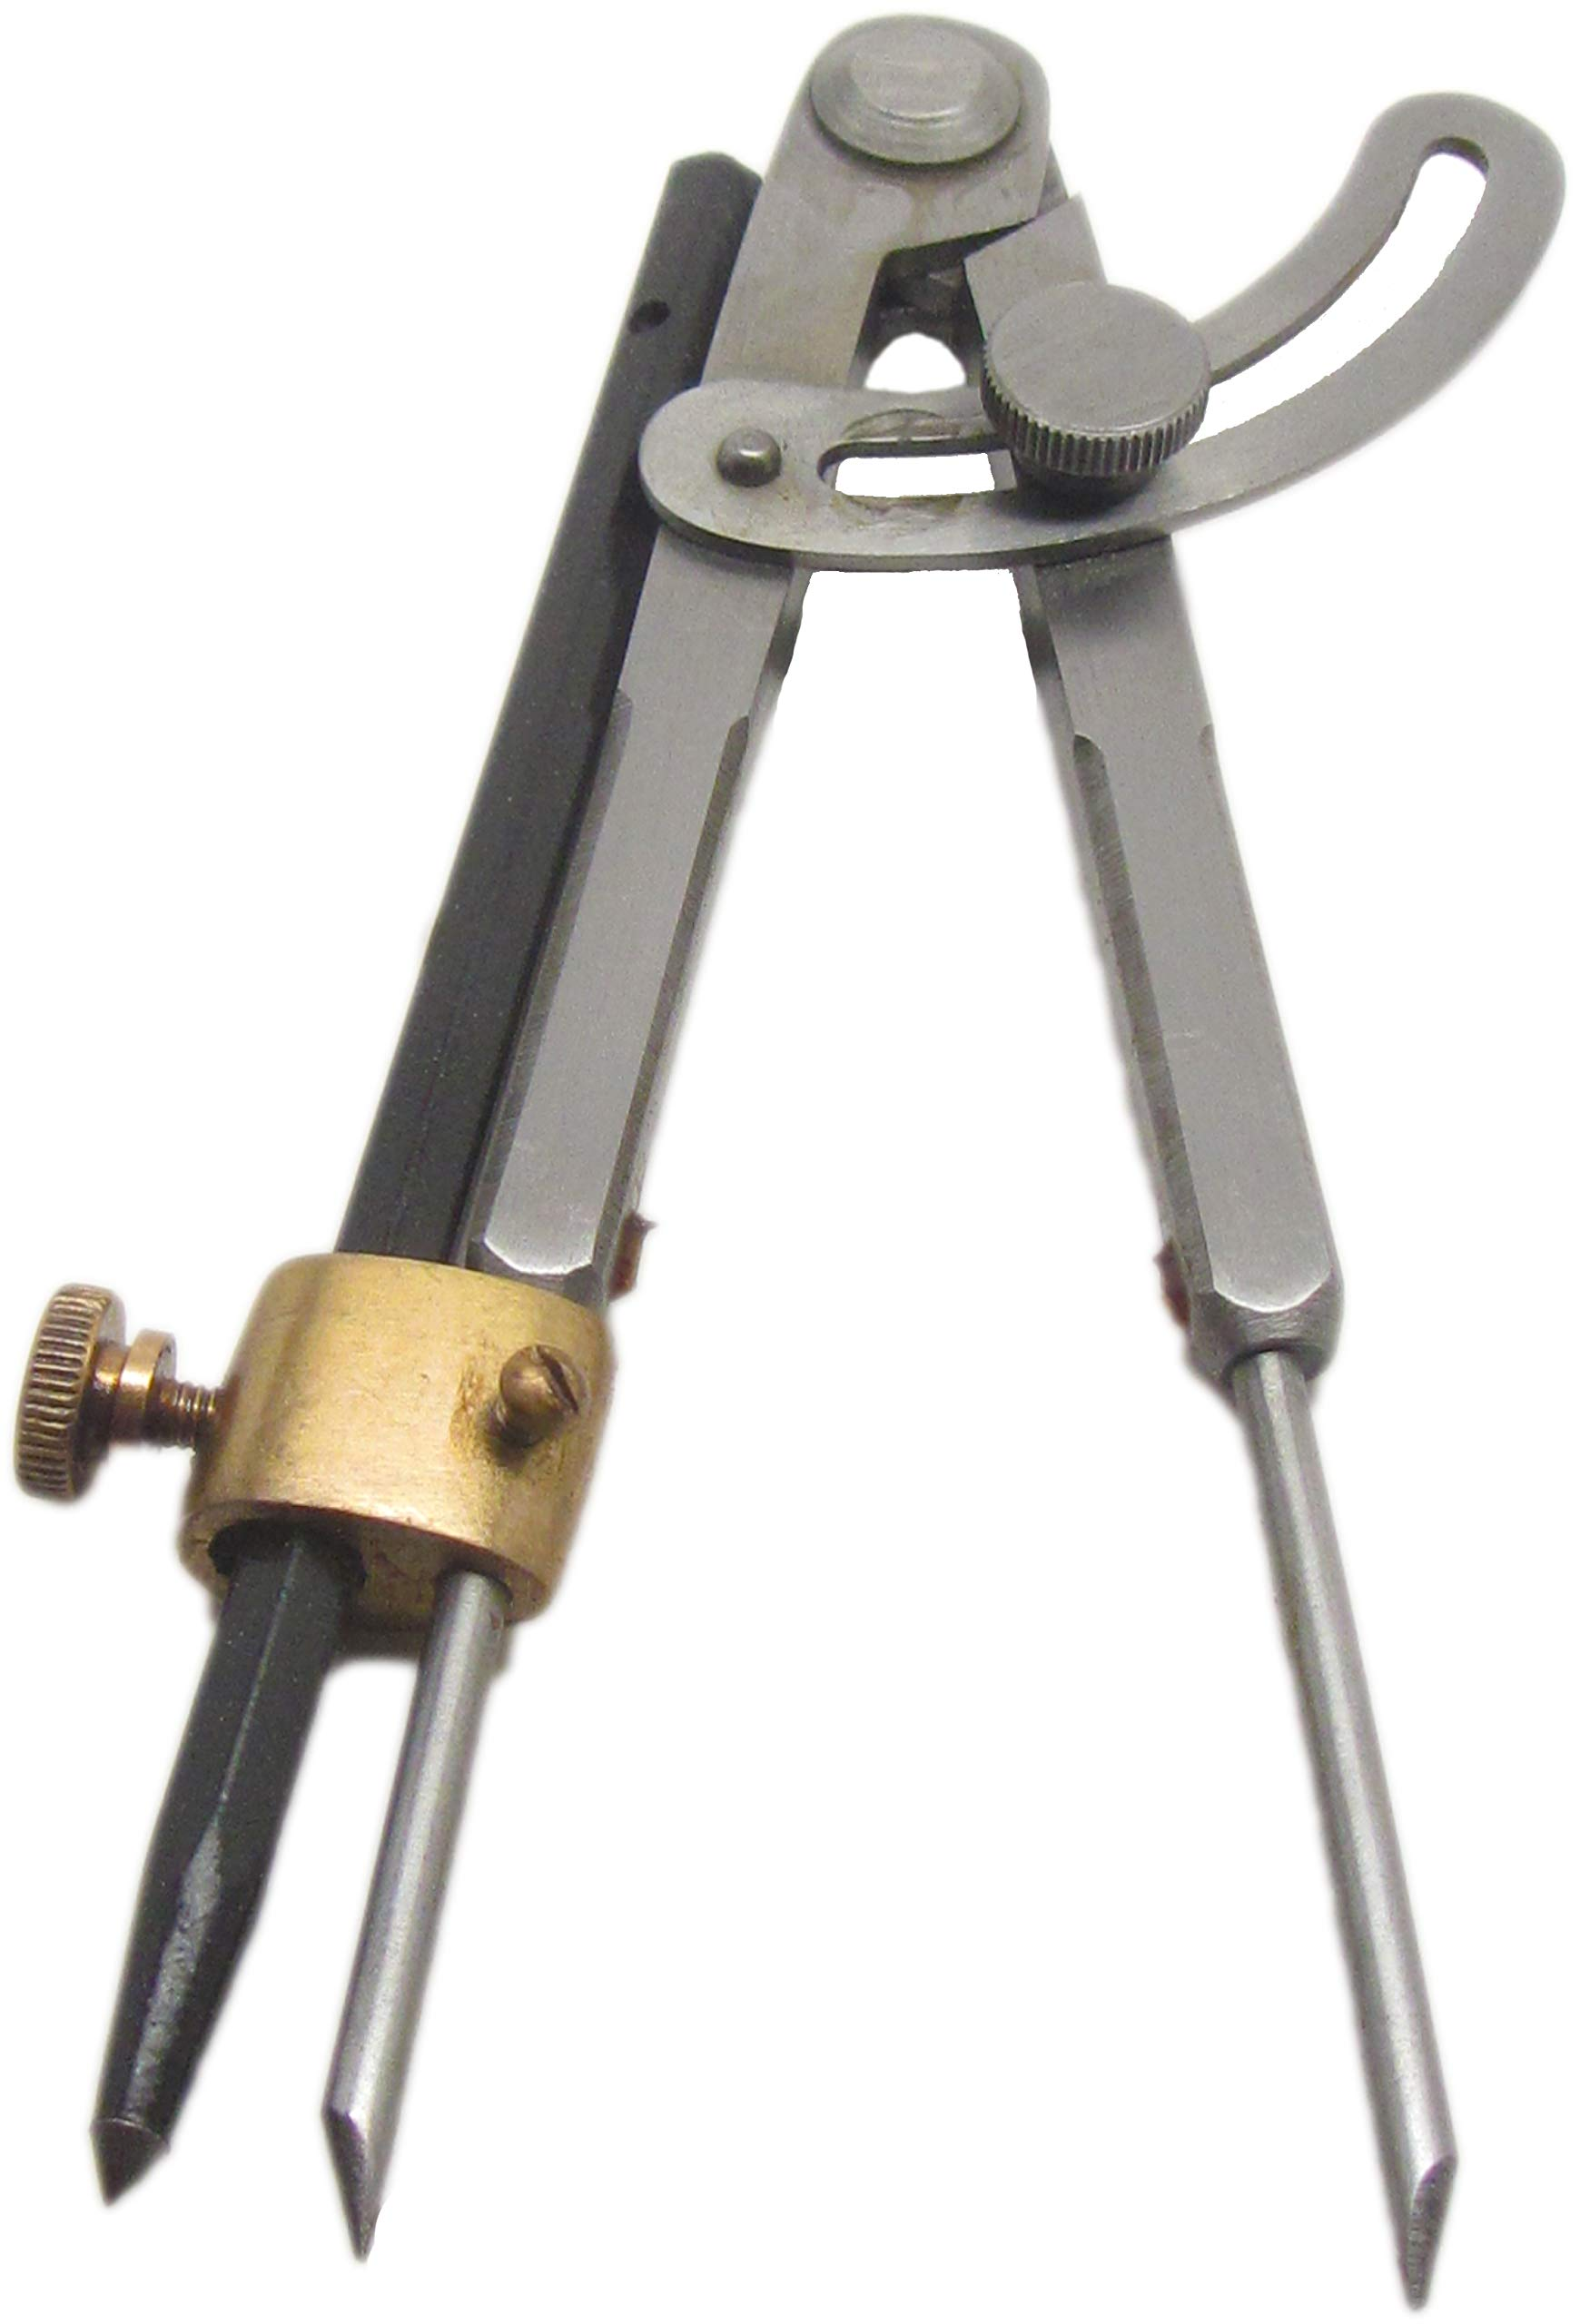 Ramelson 6'' Wing Compass Caliper Divider with Brass Holder with Carbide Scribe, Professional Machinists Metal or Wood Marking Tool